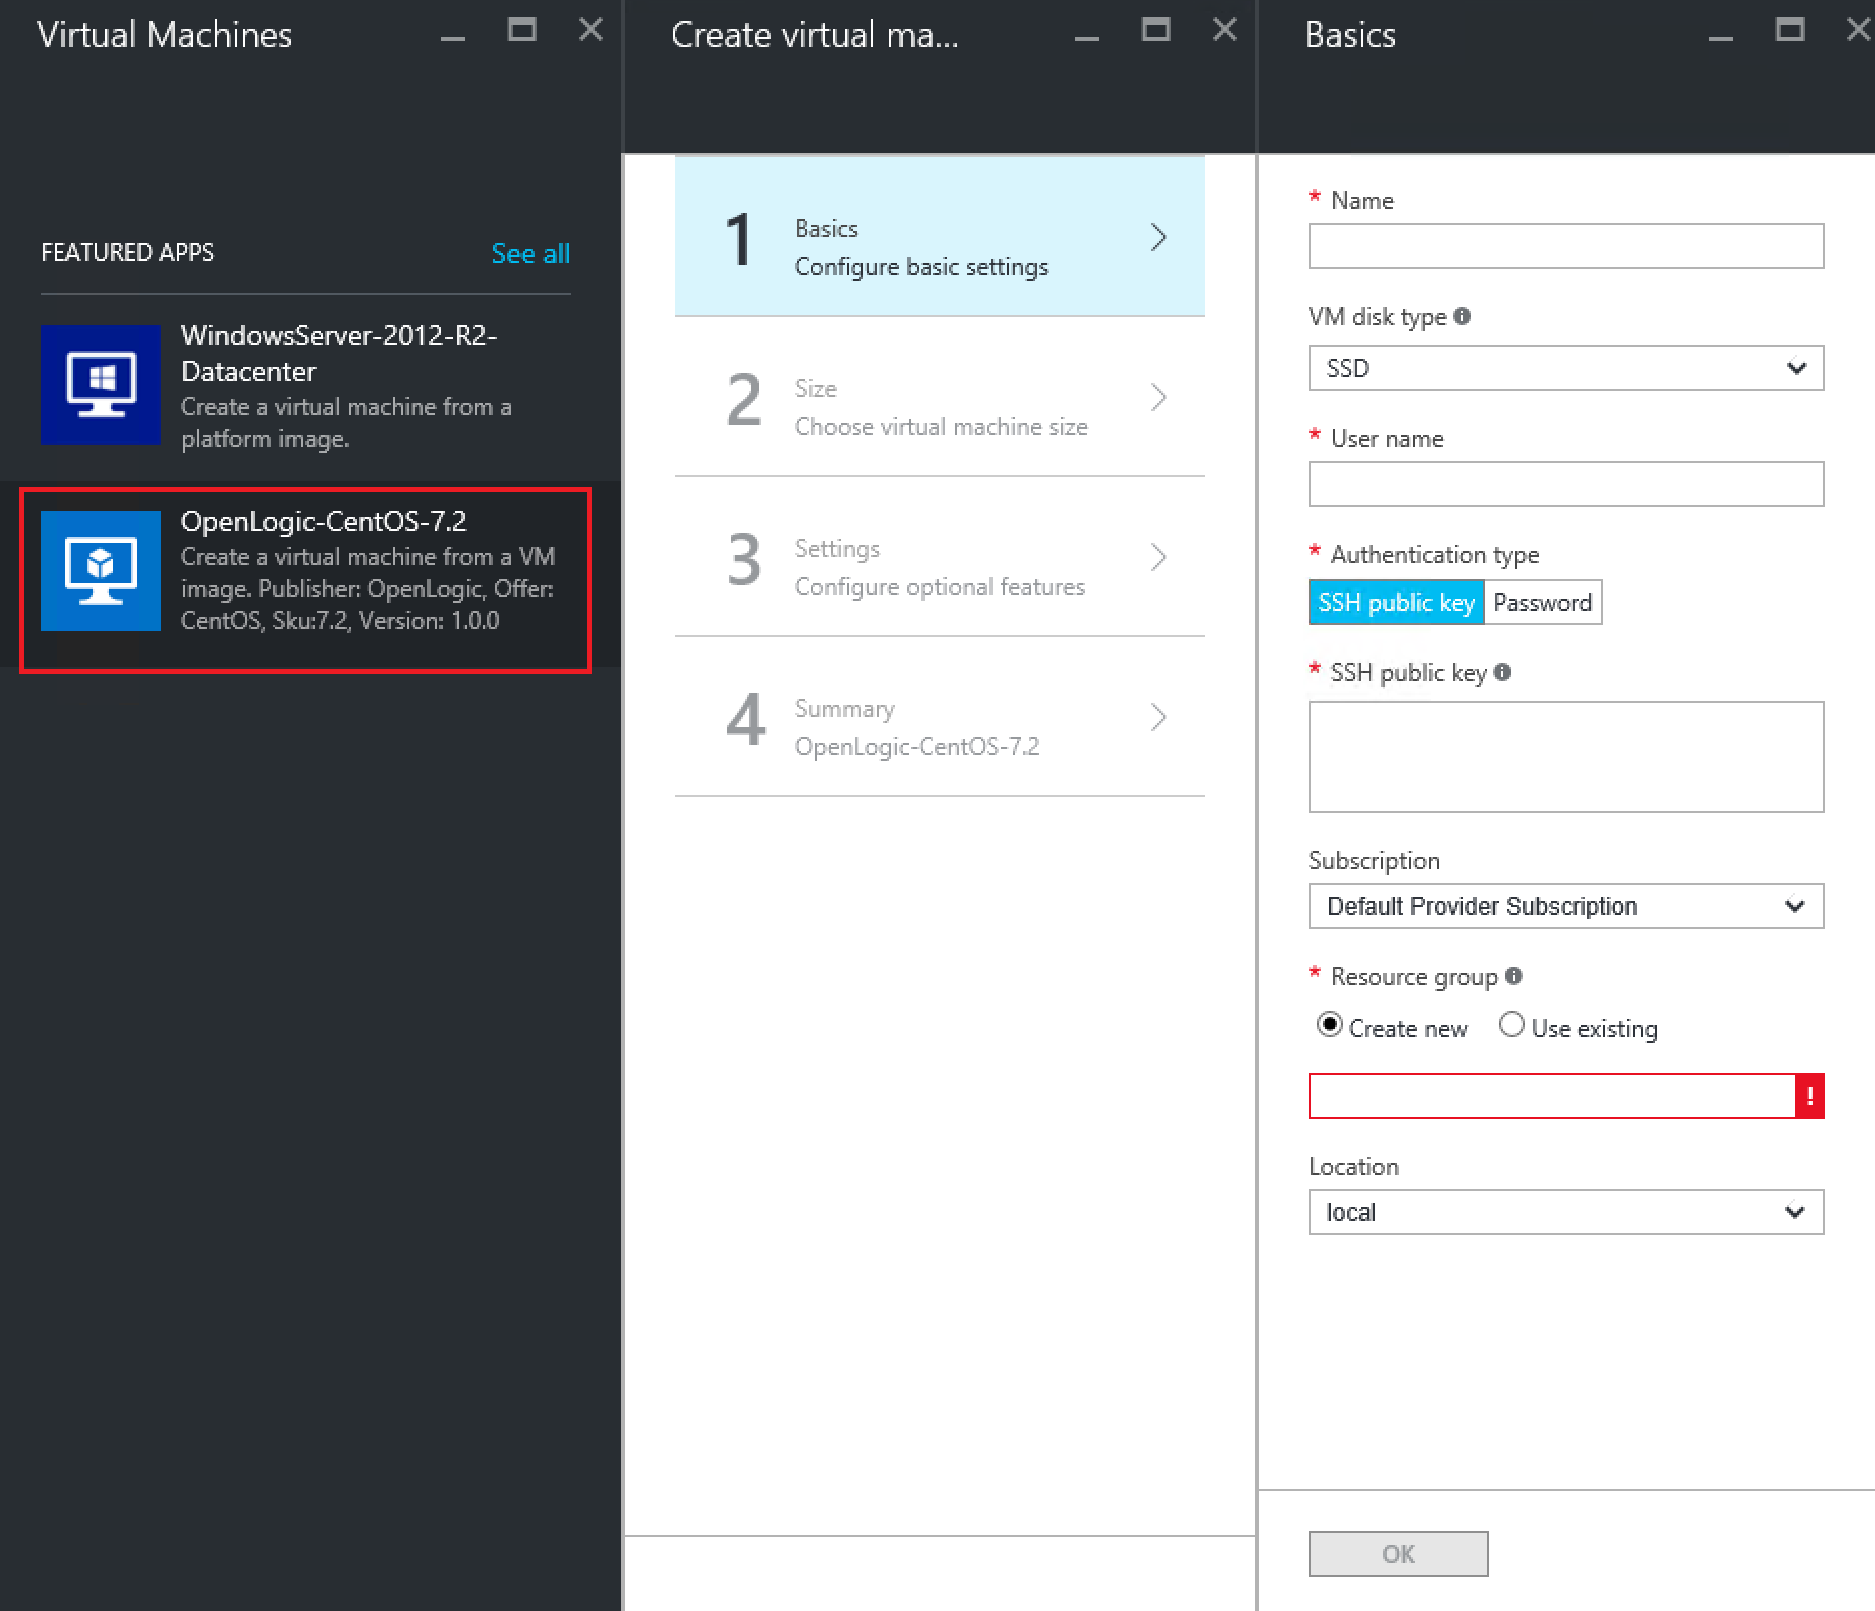 Adding and using CentOS 7 2 (or any other image) to Azure